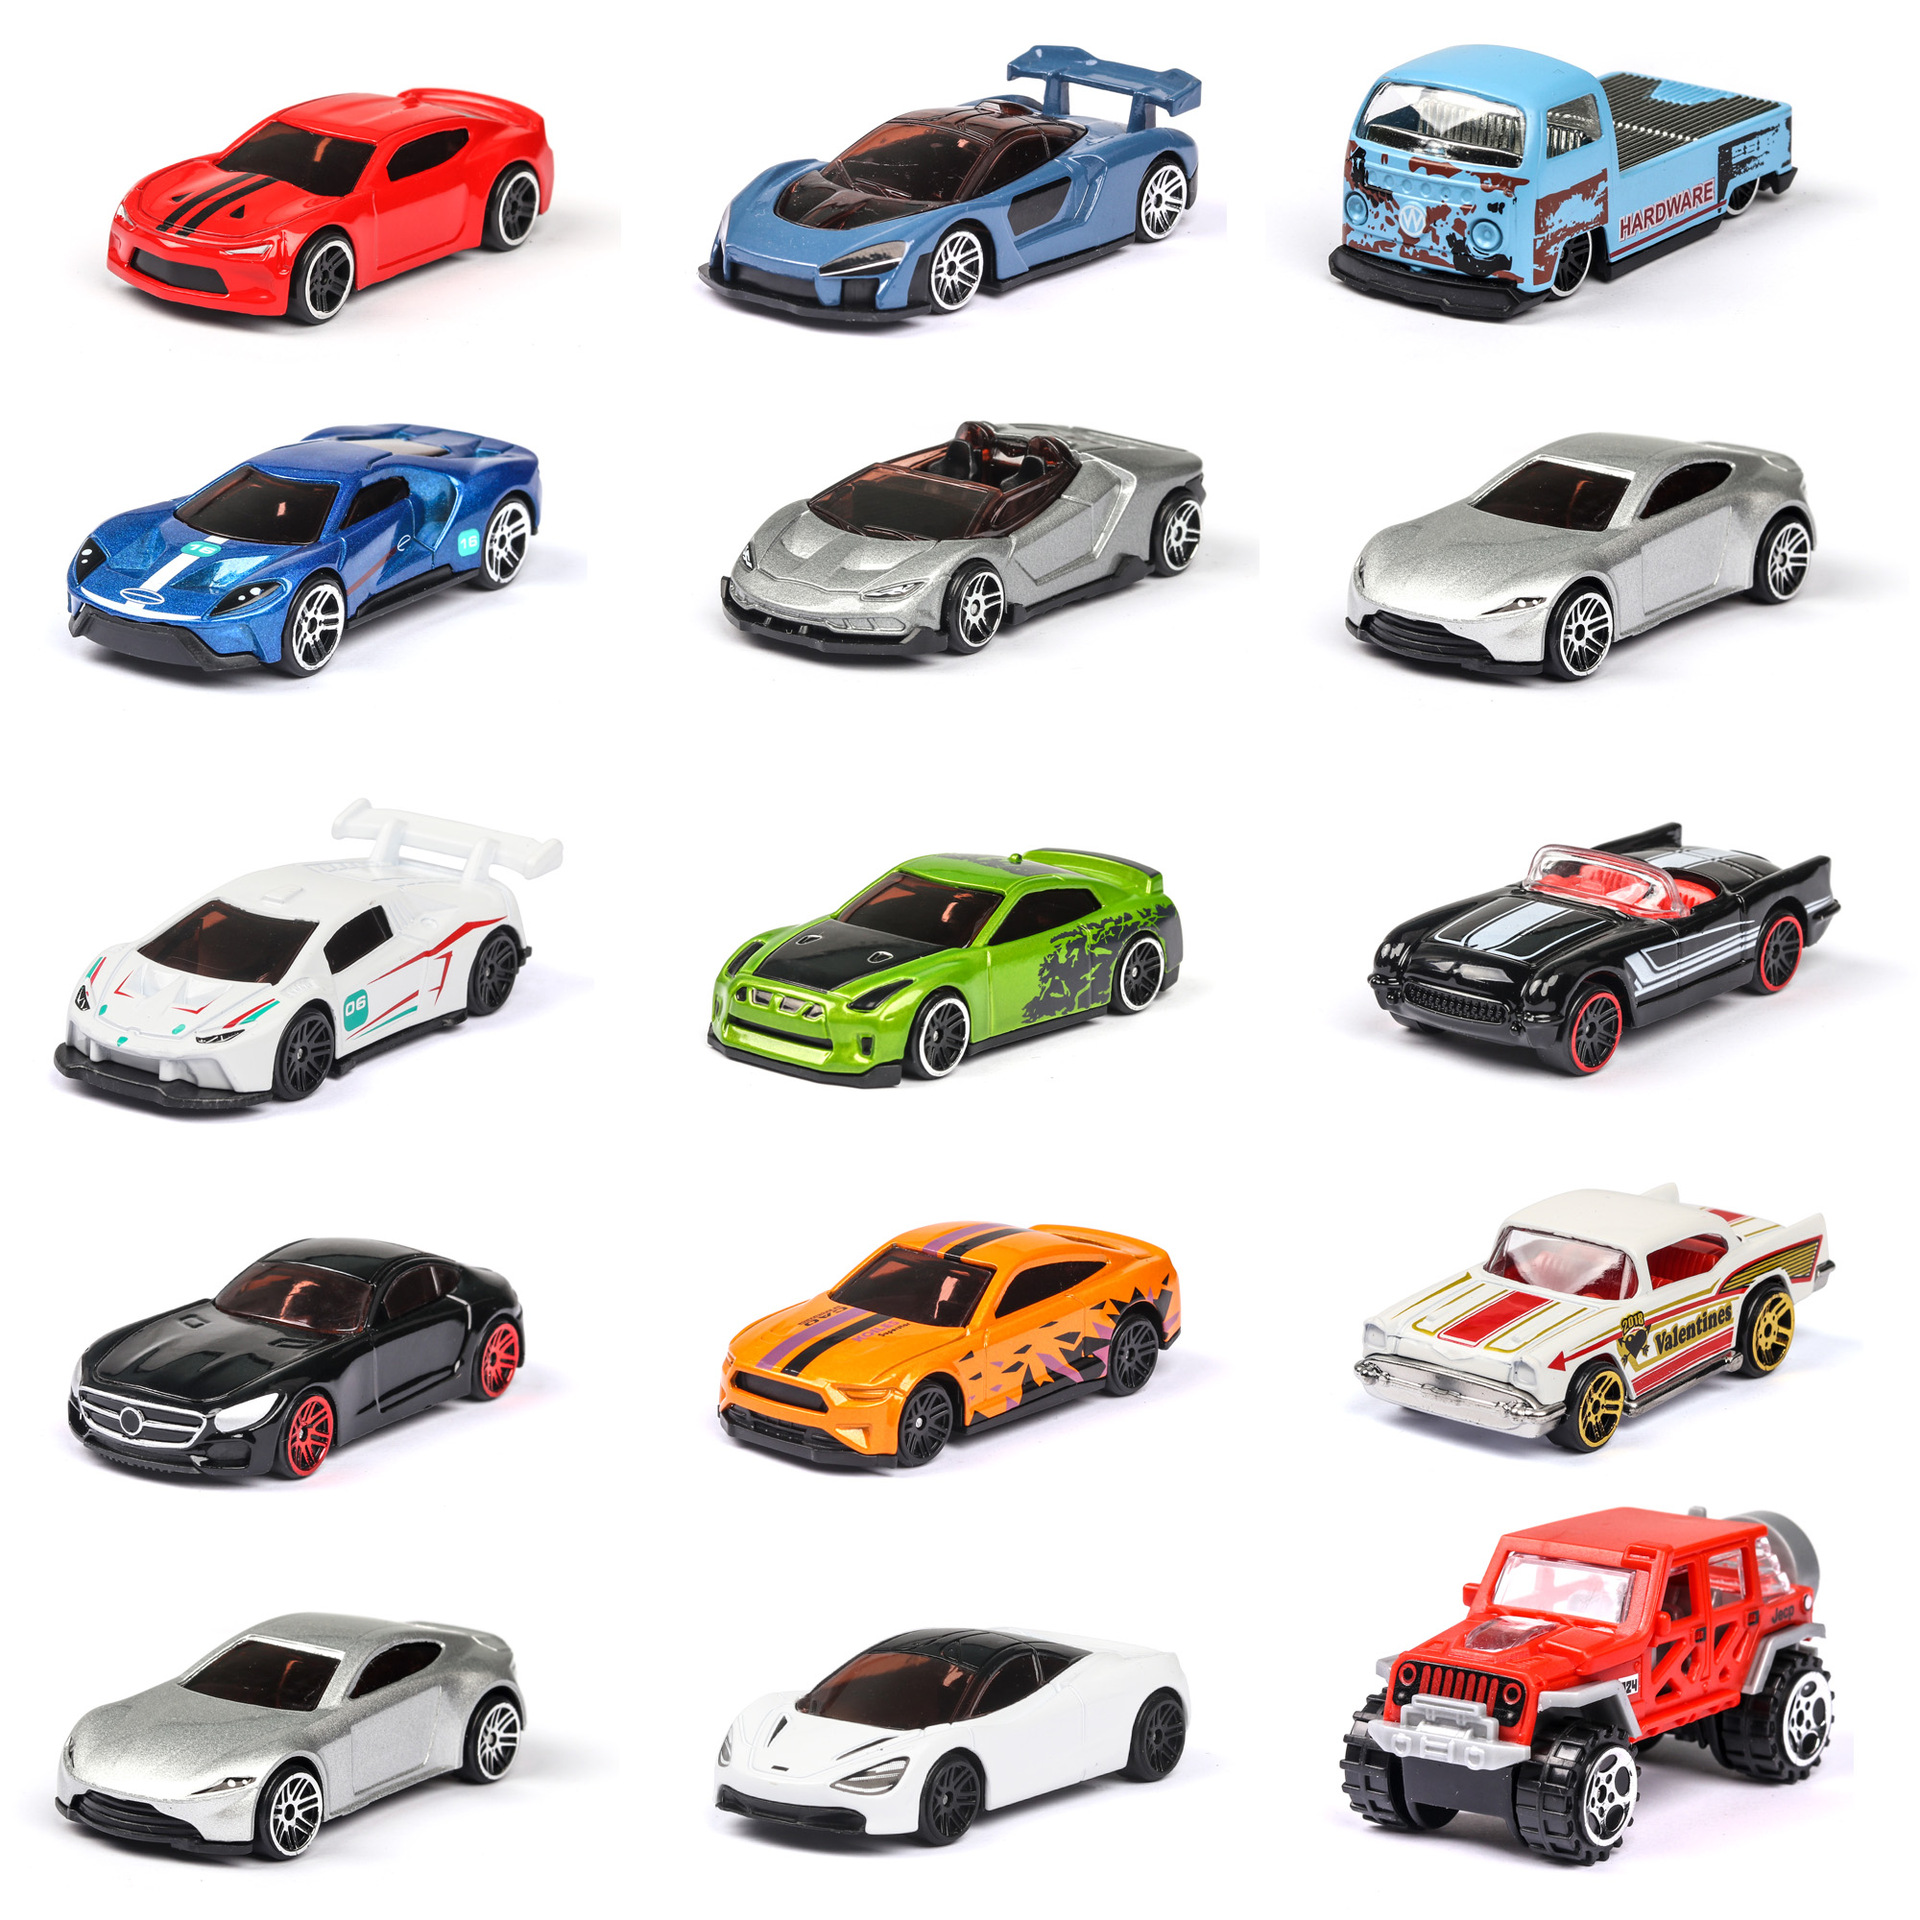 5 Metal Toy Cars 5 In1 Super Value Alloy Diecast Toy Vehicles Model Truck Race Car Play Set 5 Mini Cars For Boys Gift For Kids